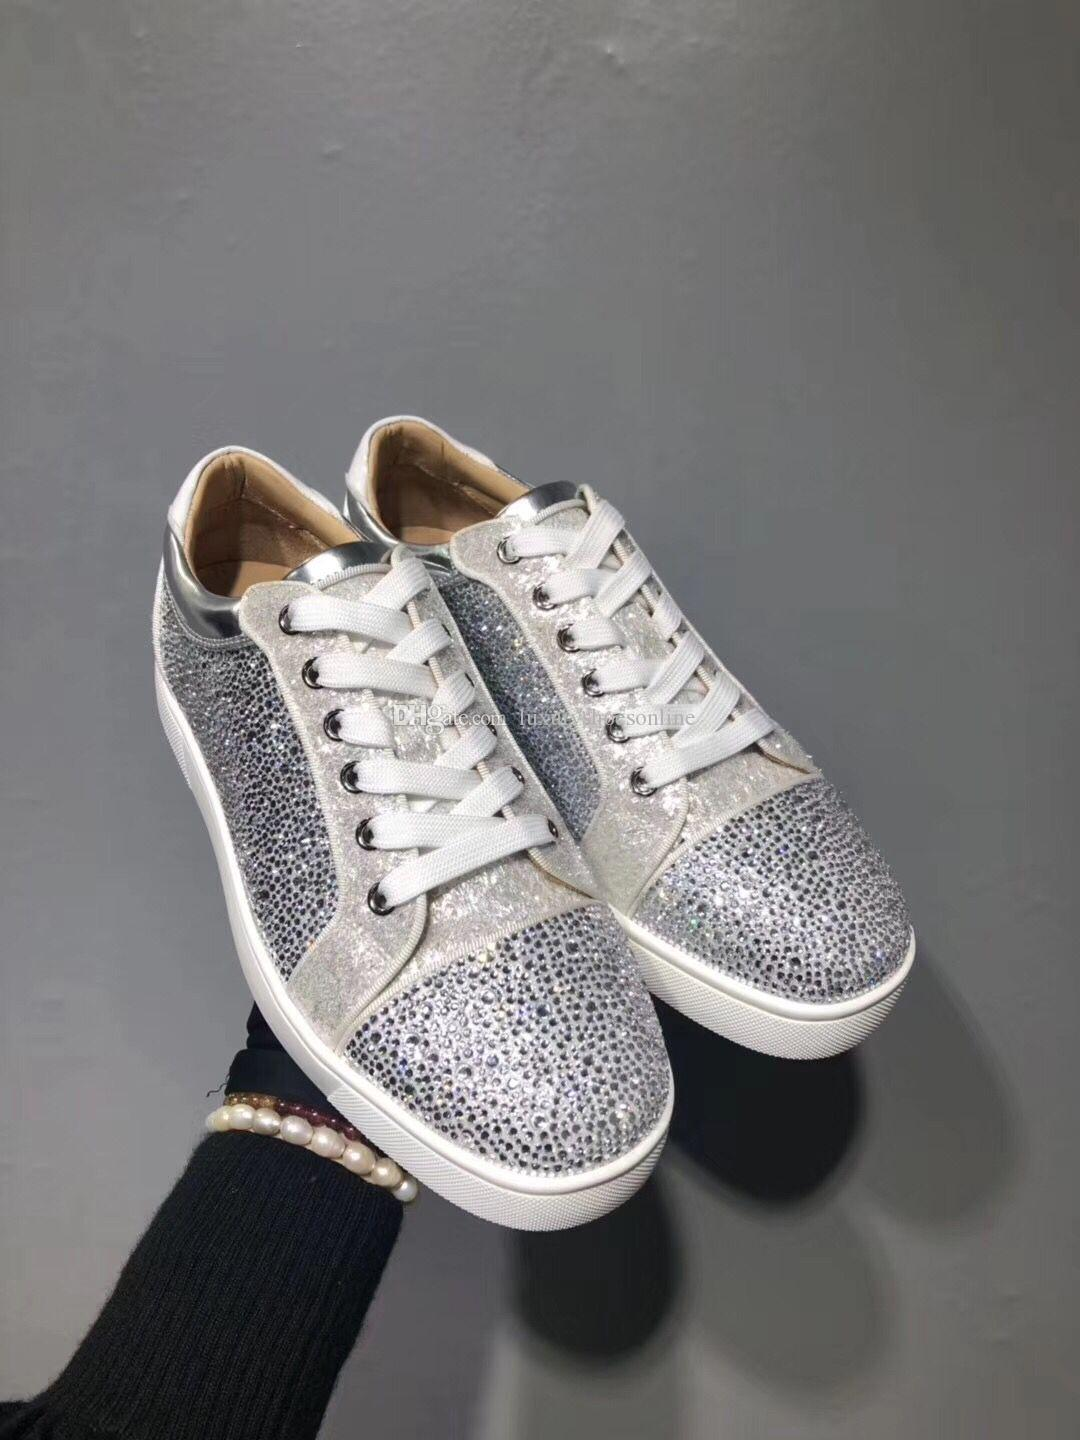 3d27e1ceb5d19 New Stylish Sneaker Shoes For Women,Men Red Bottom Shoes Low Top Trainers,Comfort  Walking Shoes,Cheap Best Party Wedding Dress With Box Formal Shoes For Men  ...